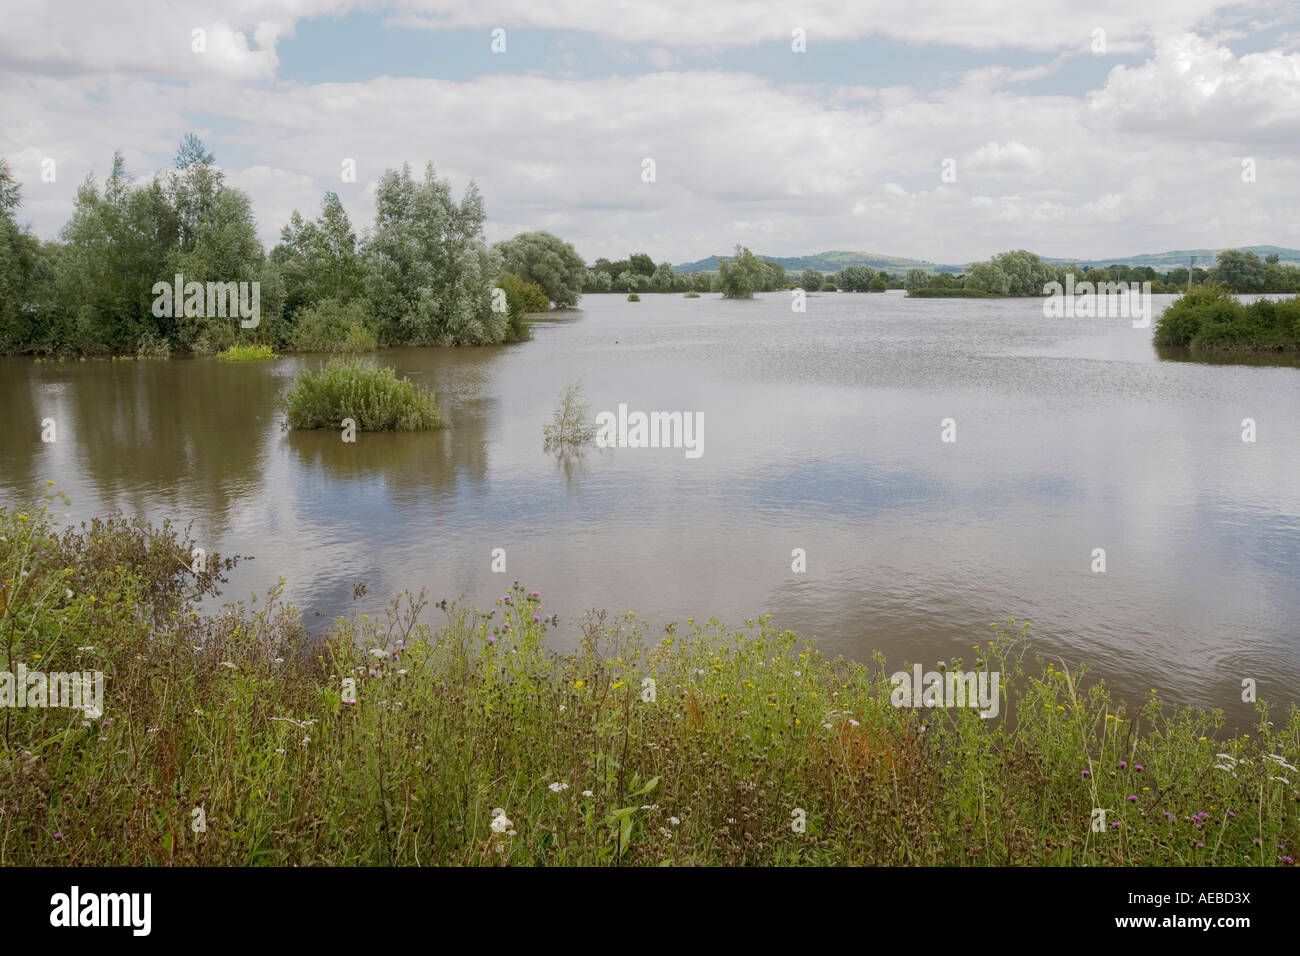 Flooded fields on the outskirts of Tewkesbury - Stock Image